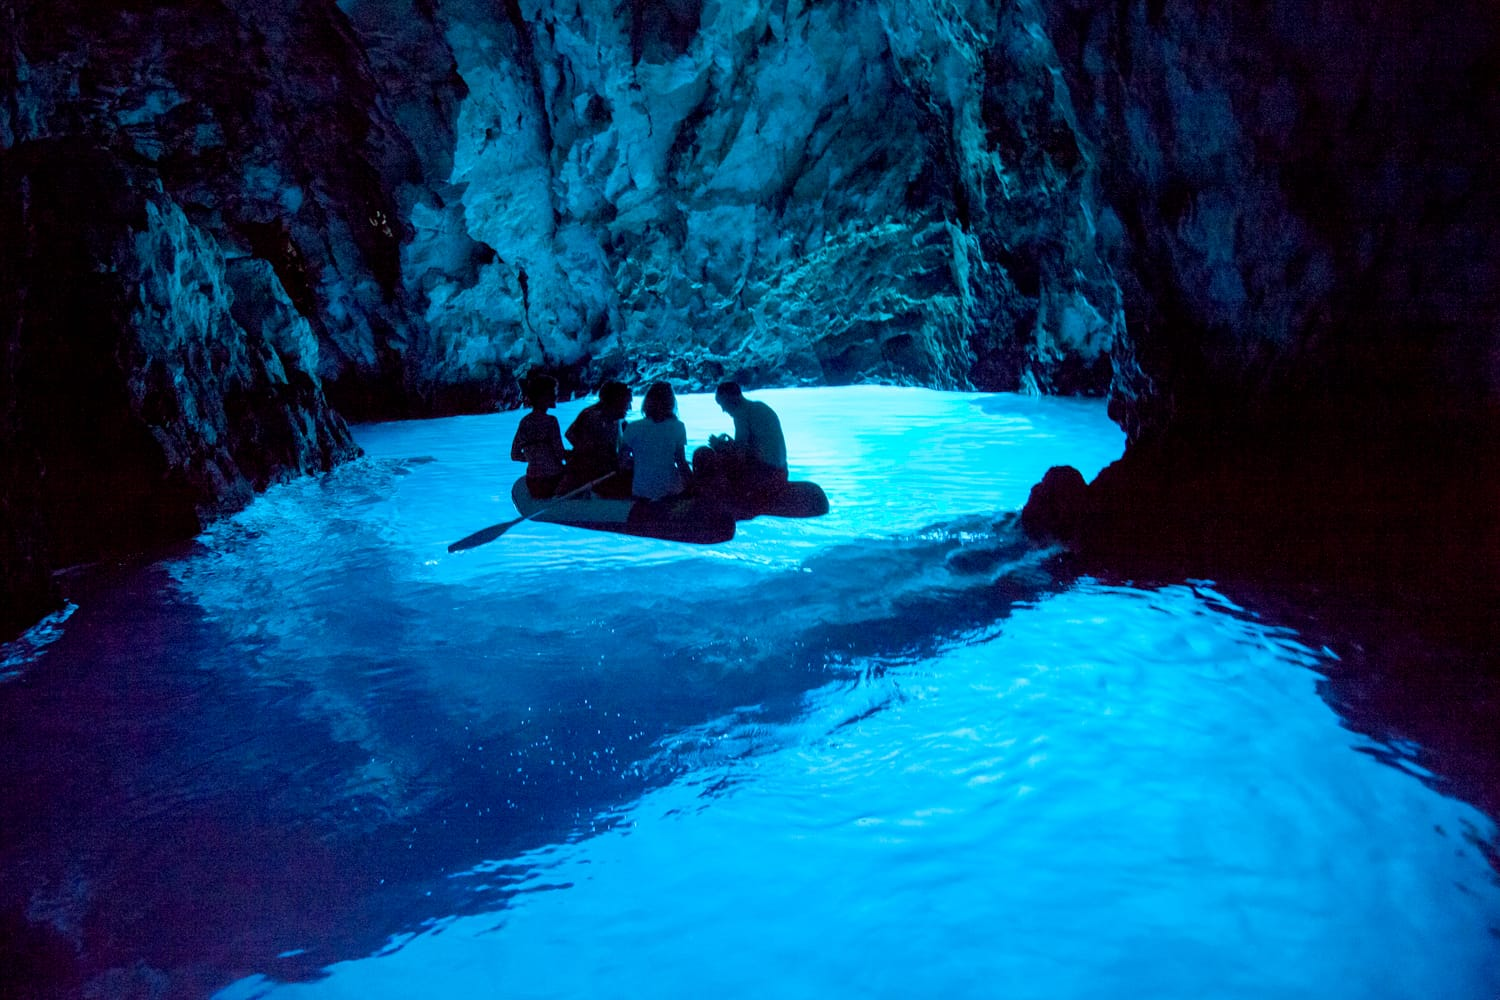 The Blue Cave is one of Croatia's natural wonders, located on the eastern side of island Bisevo. The cave receives more than 90,000 tourist visits every year